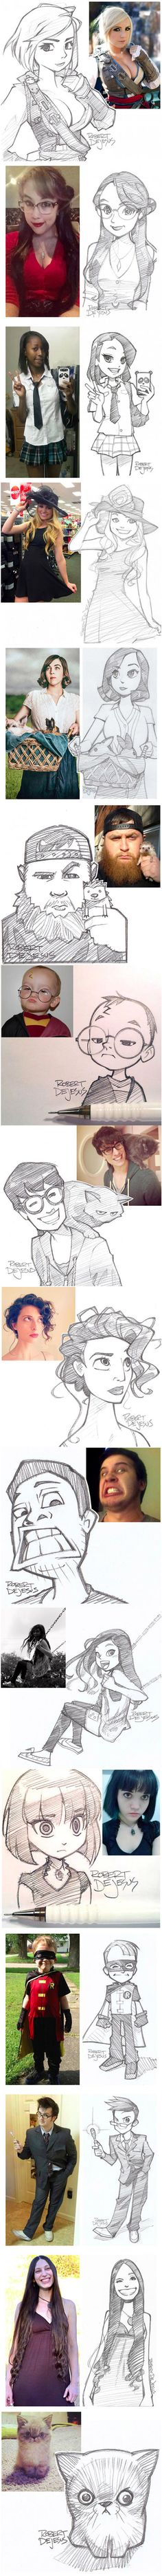 People and their cartoon versions...